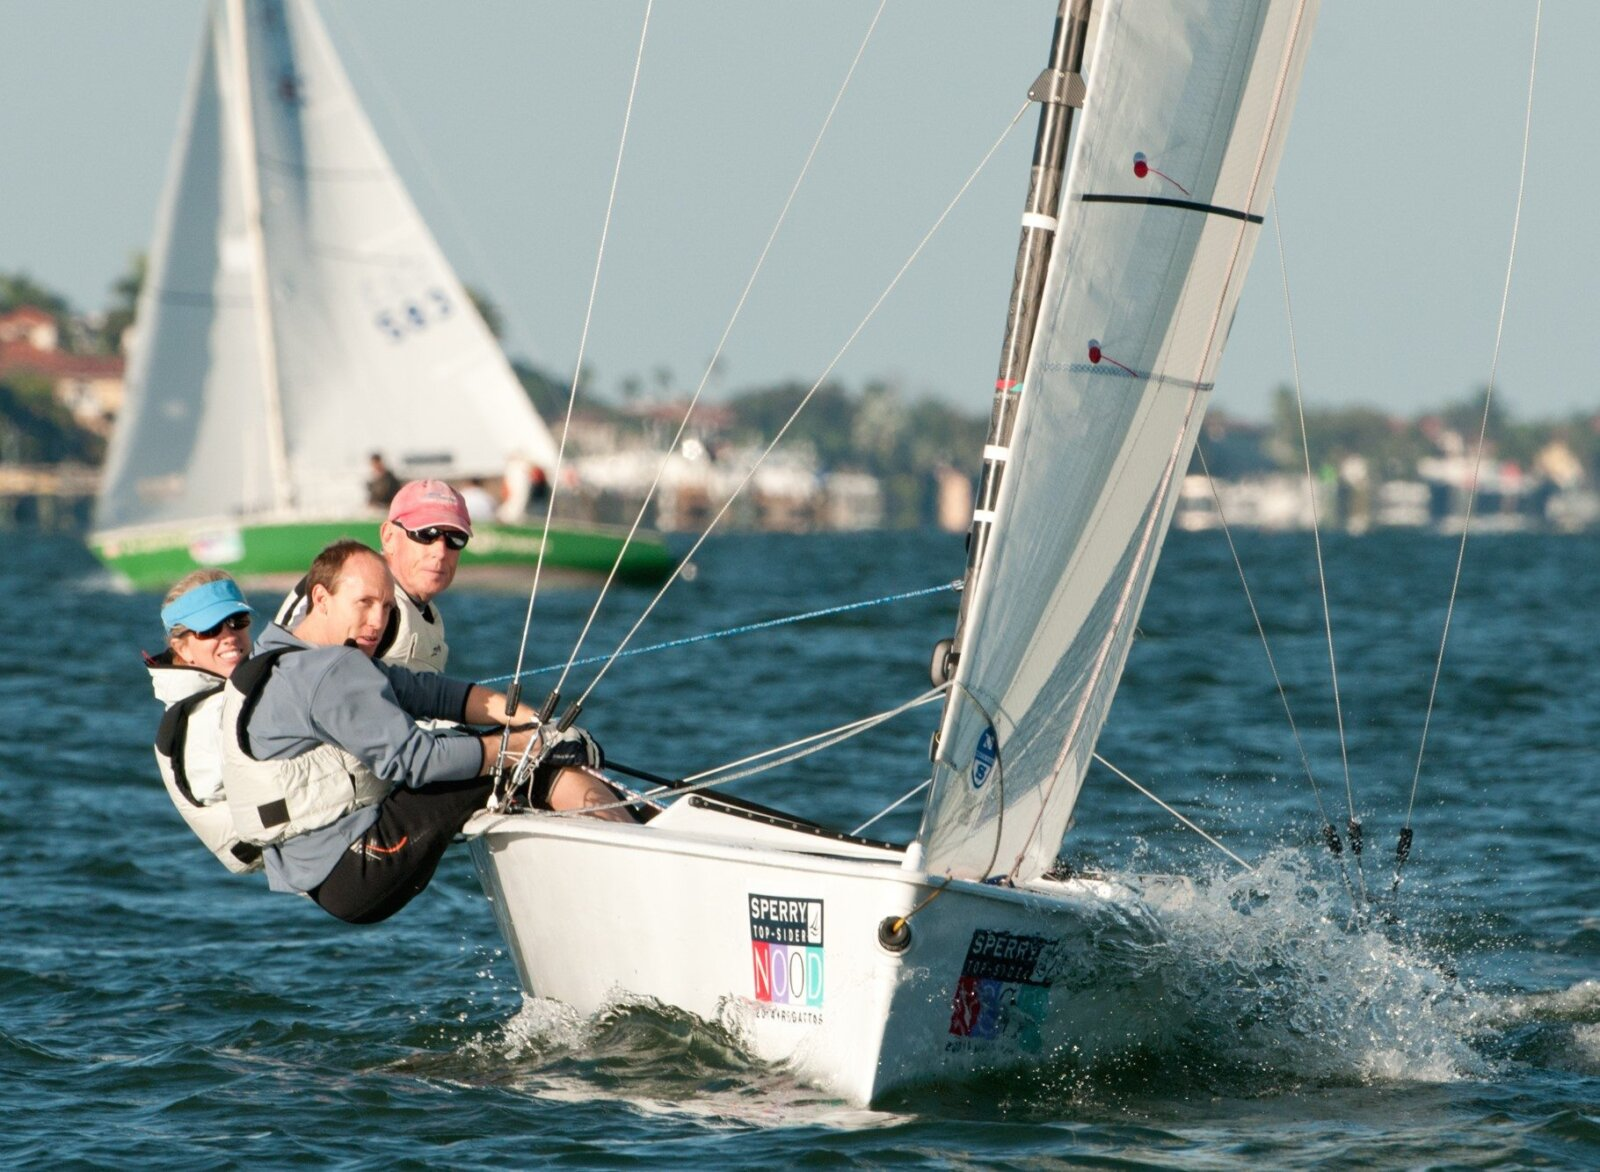 Andy Walford, wife Beth and son, Richard will race Commando, their VX One in this new STIR one-design class.